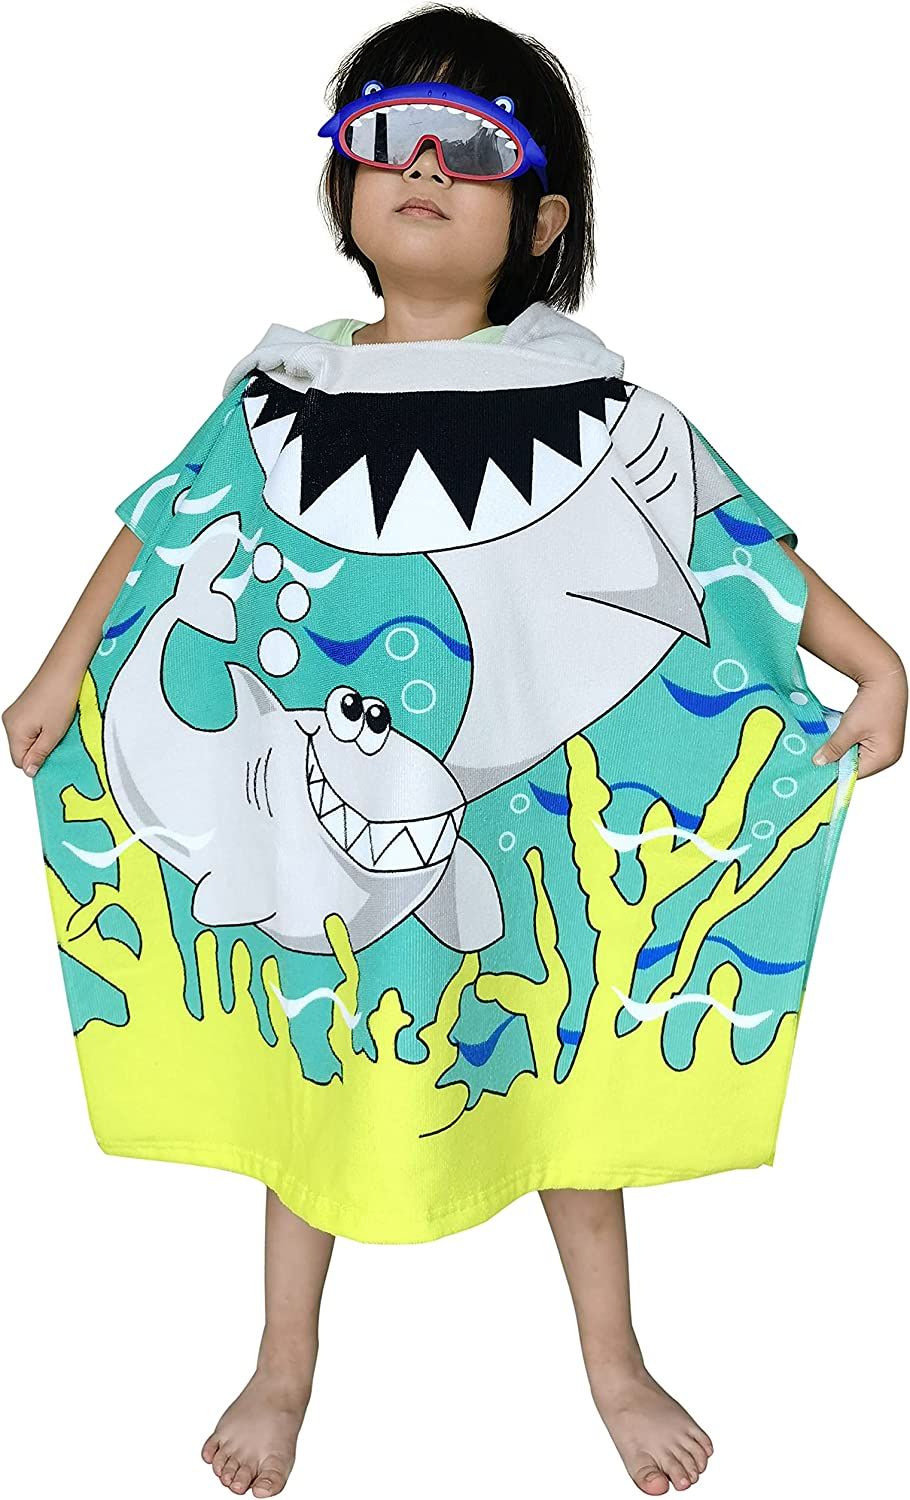 Regular discount Kids Hooded Poncho Towel with Bright Shark T for Pool New item Beach Bath